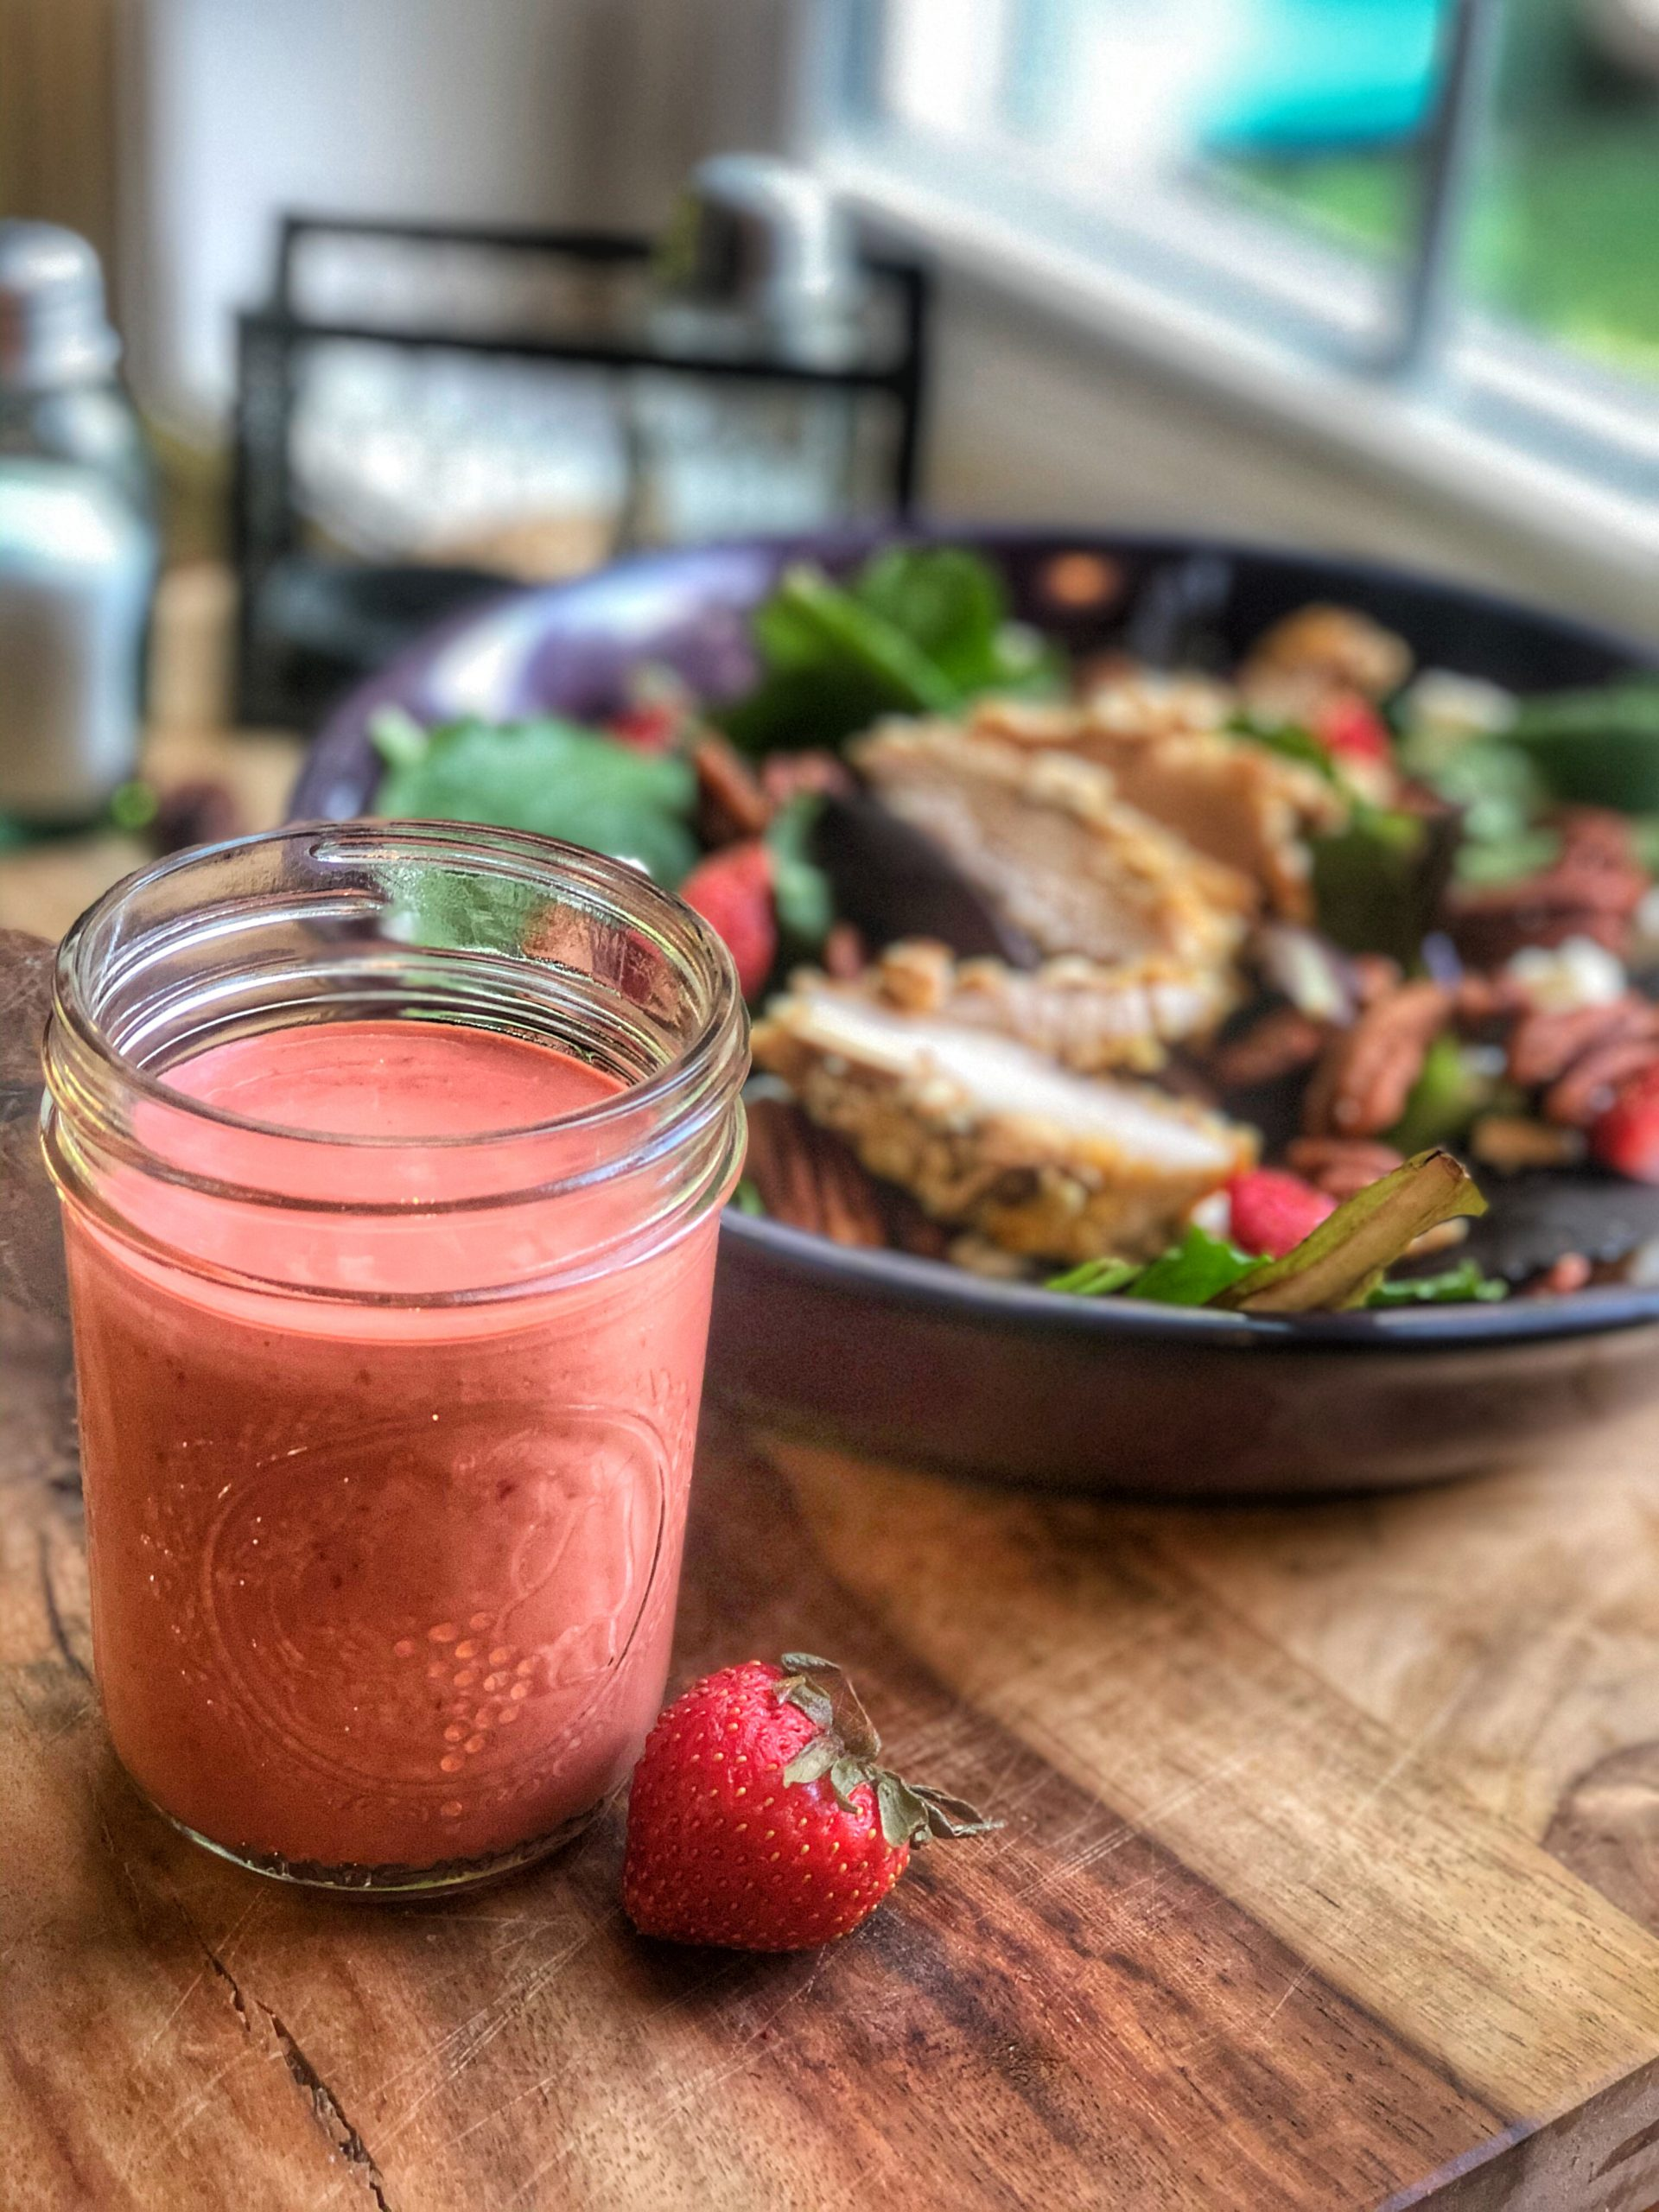 homemade strawberry vinaigrette dressing in a glass container with a salad in the background